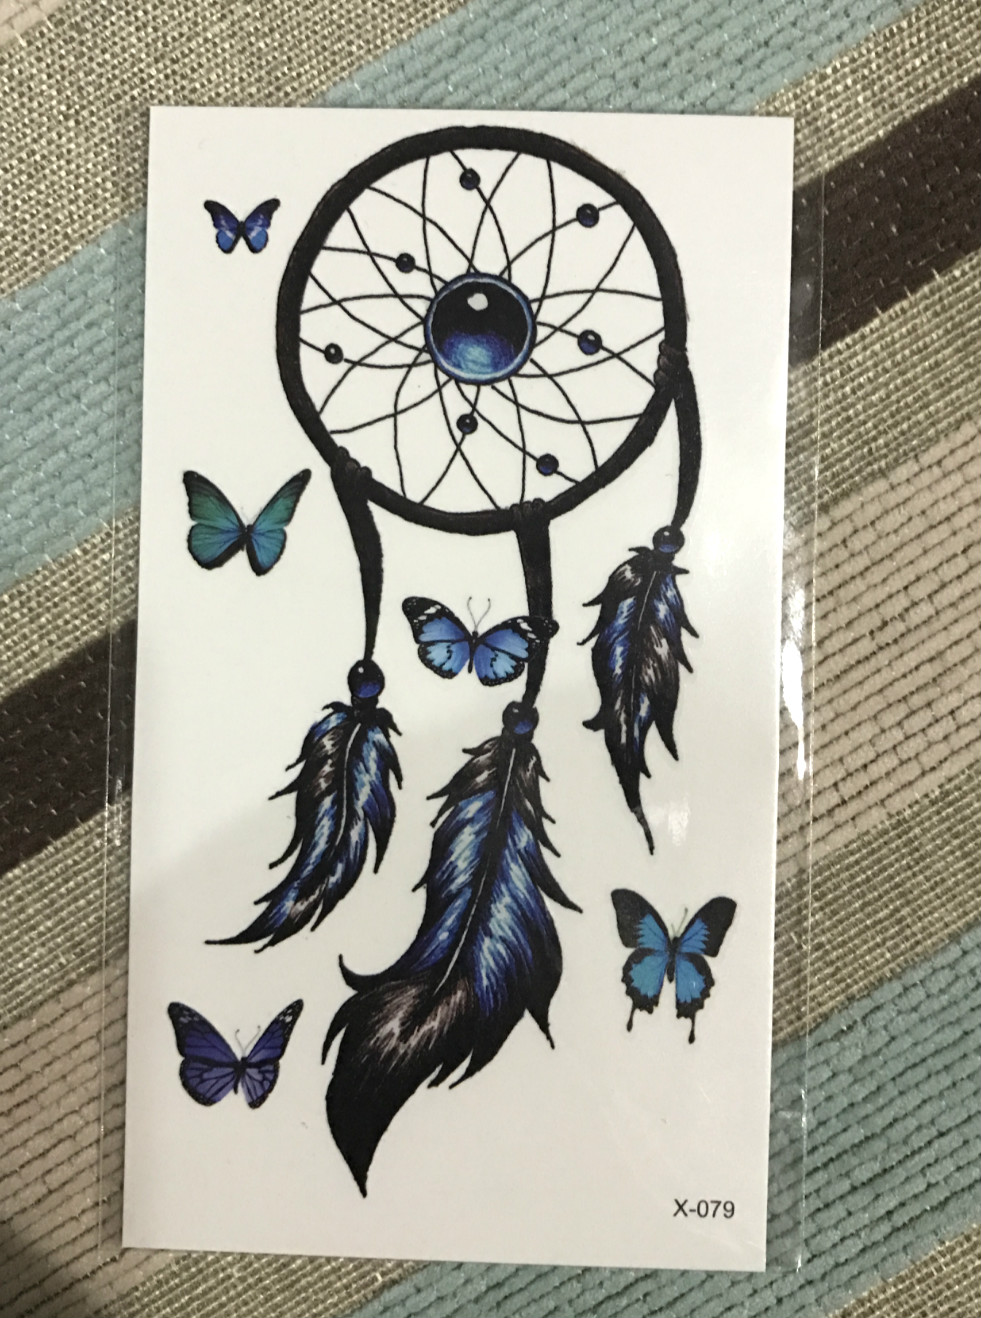 Free shipping Waterproof Temporary Tattoo Sticker 10.5*6 cm feather blue butterfly tattoo Tattoo Flash tattoos for men girl(China (Mainland))